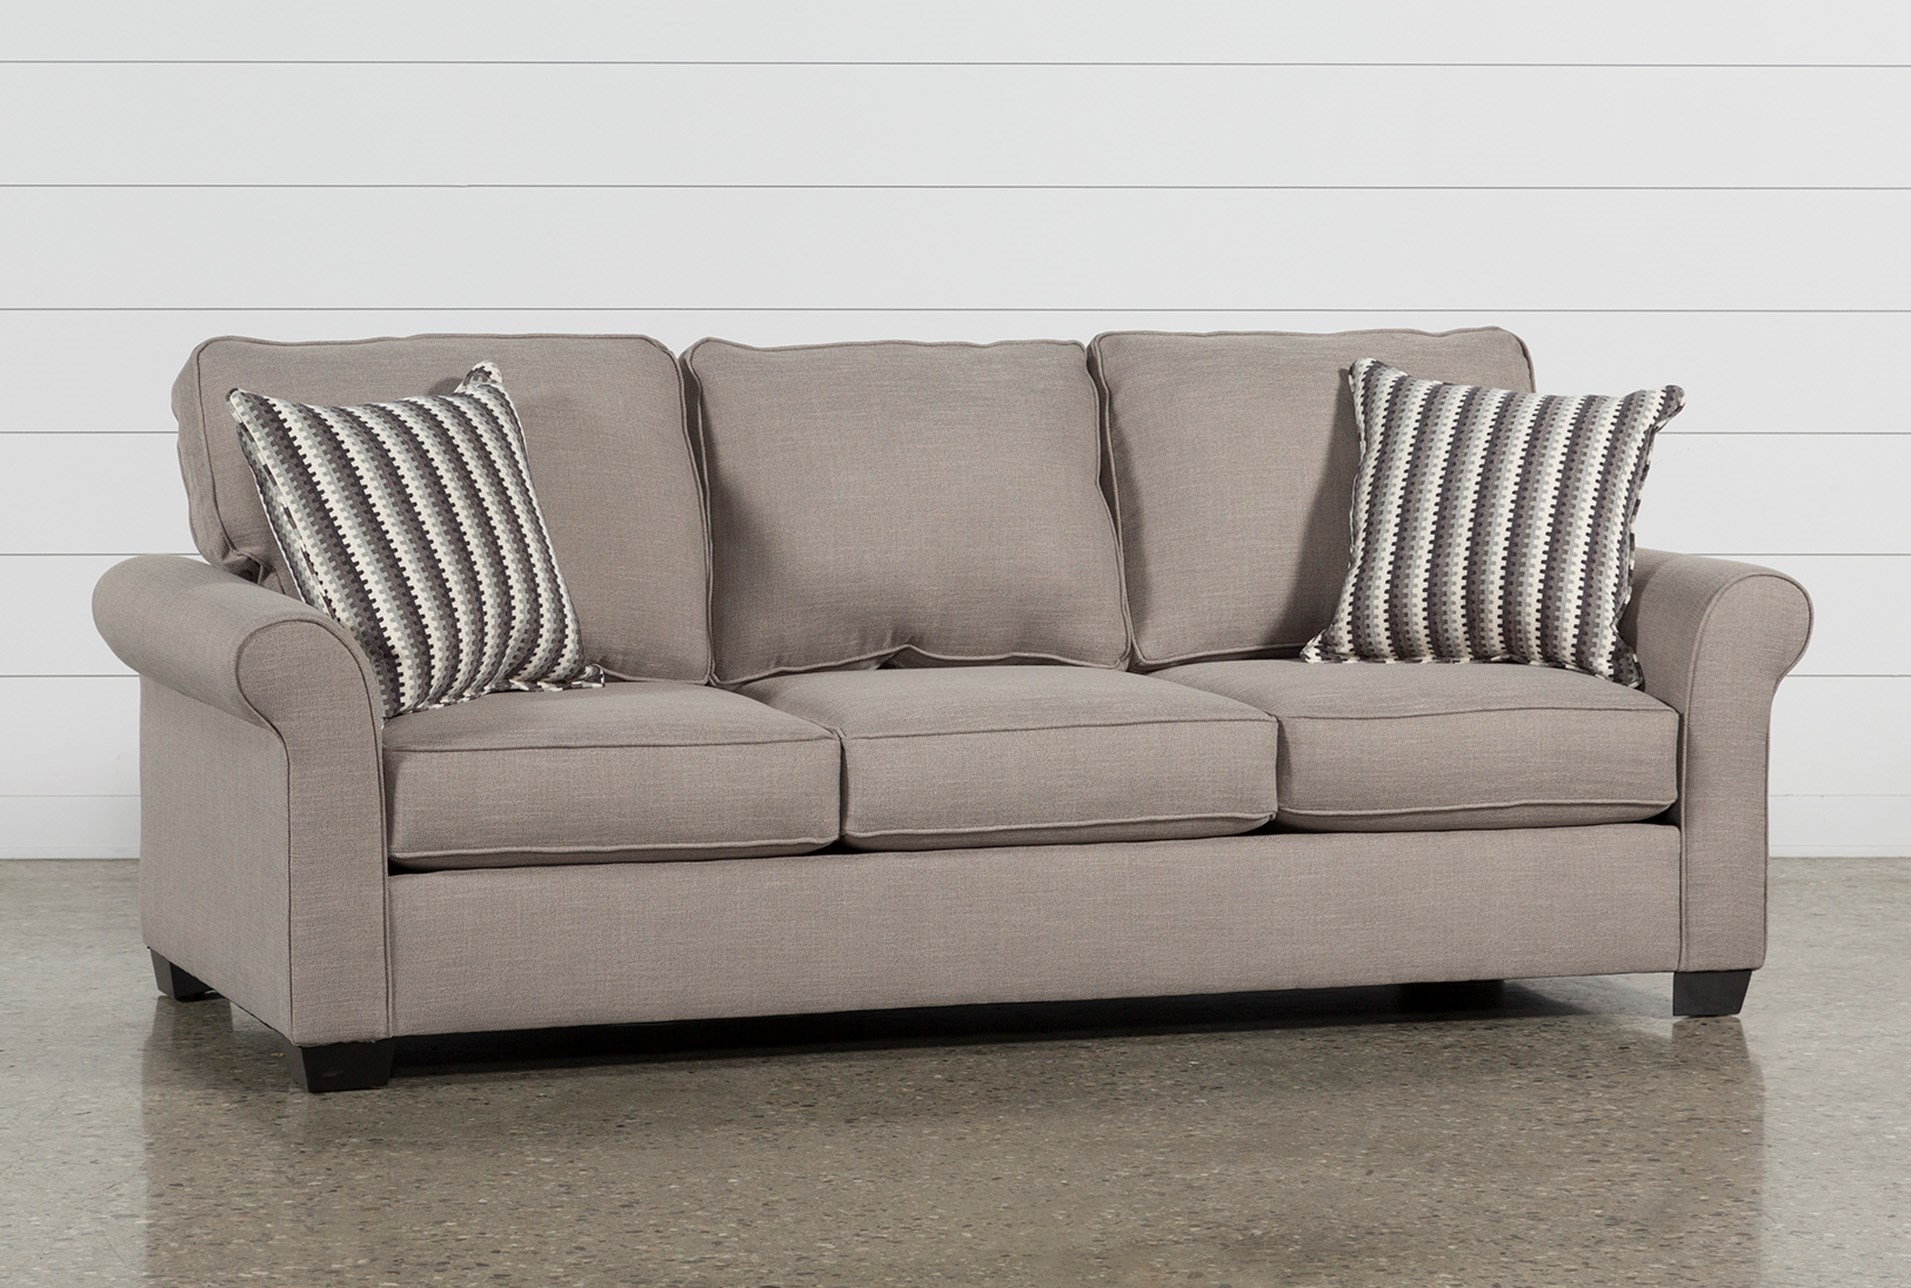 Quinn Teak Sofa Qty 1 Has Been Successfully Added To Your Cart